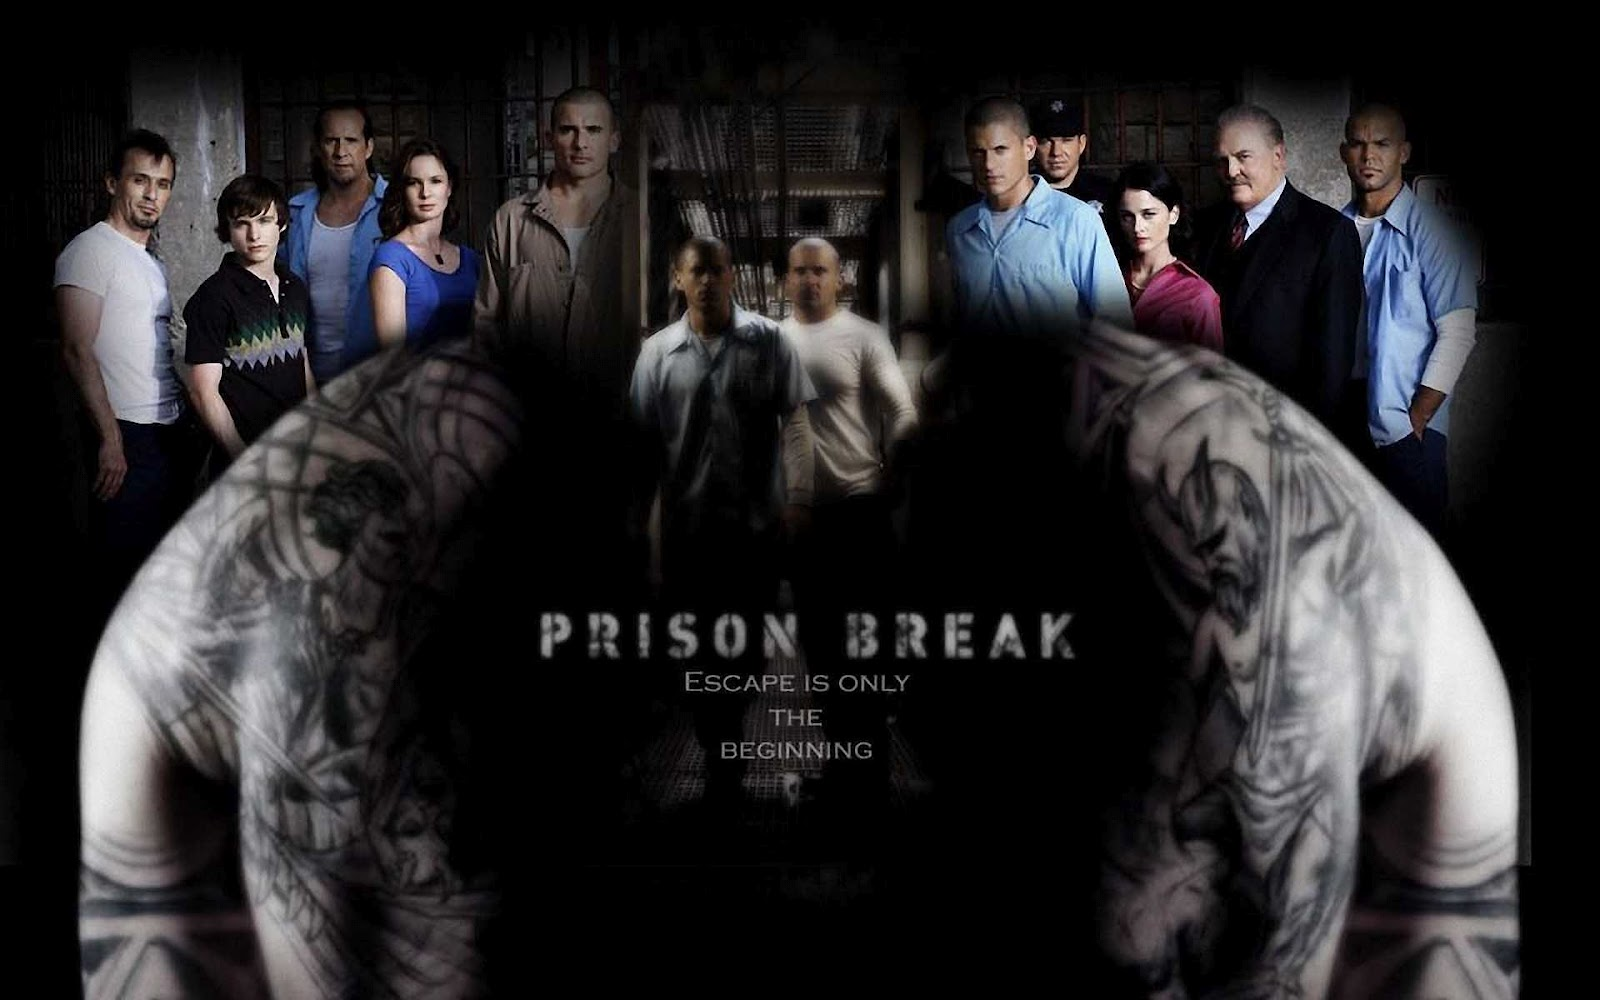 Prison Break\', escape tras escape | TV Spoiler Alert